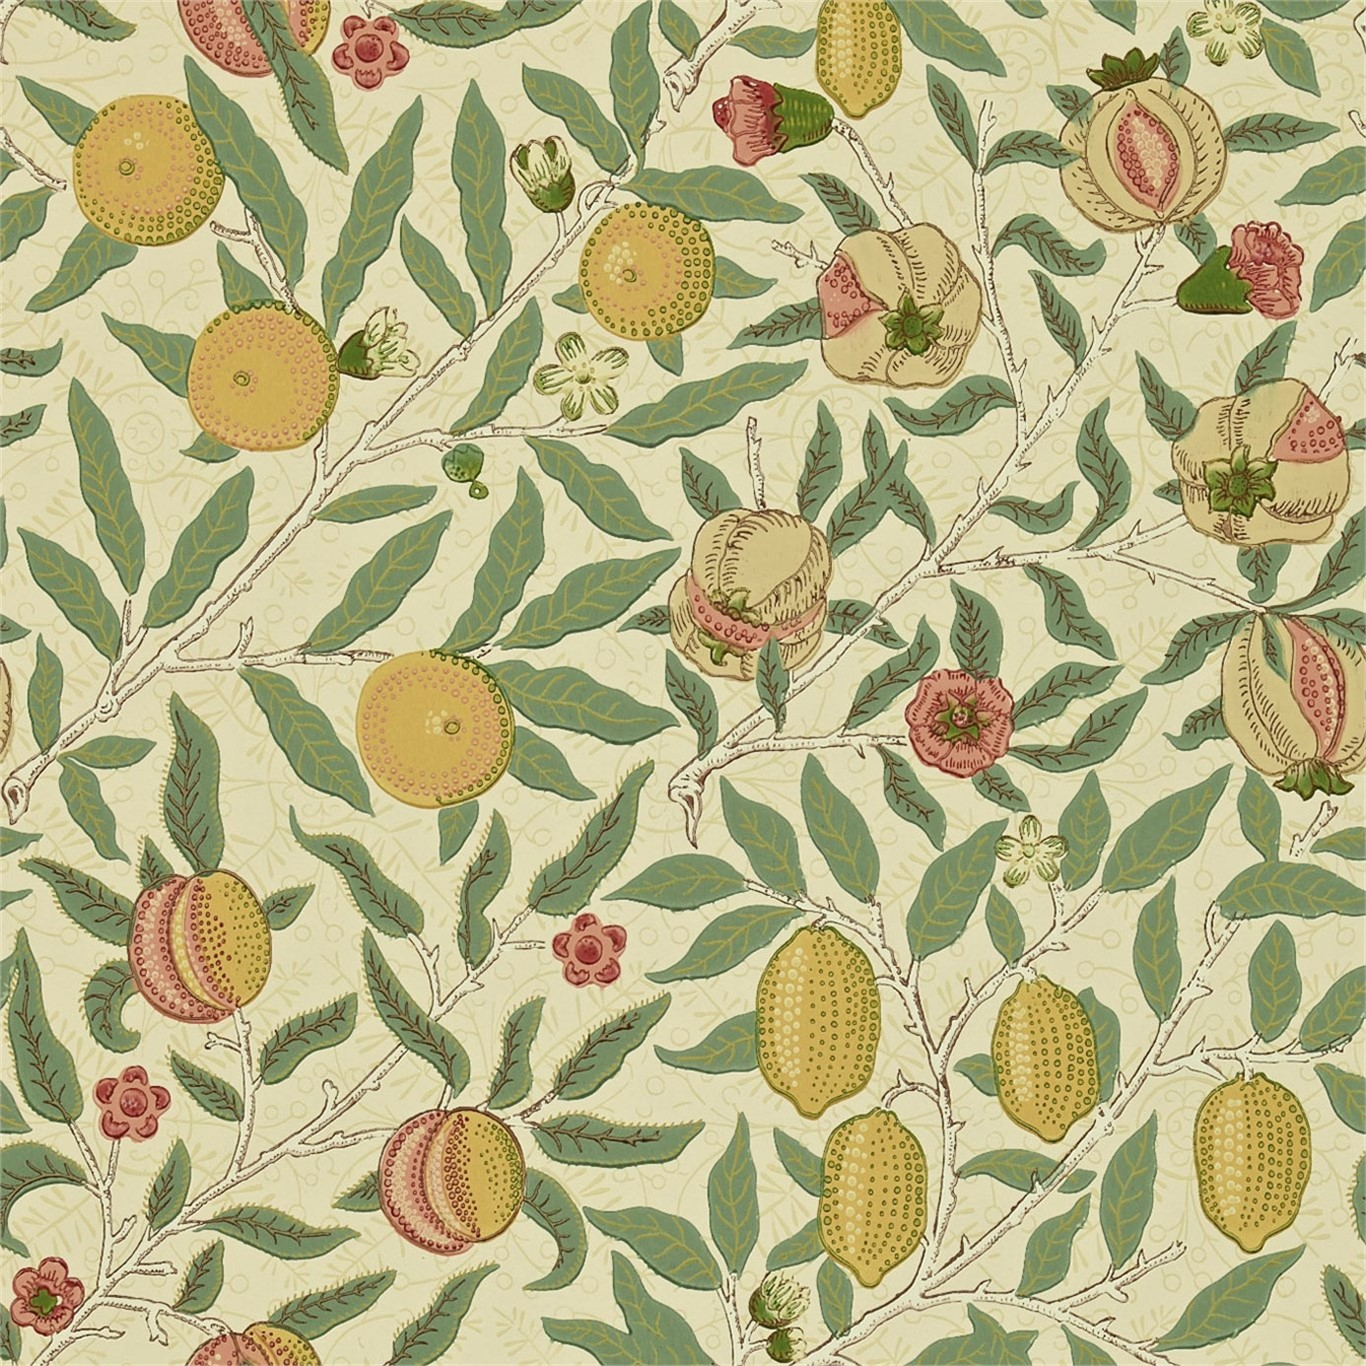 Tapet William Morris Fruit WR8048-1